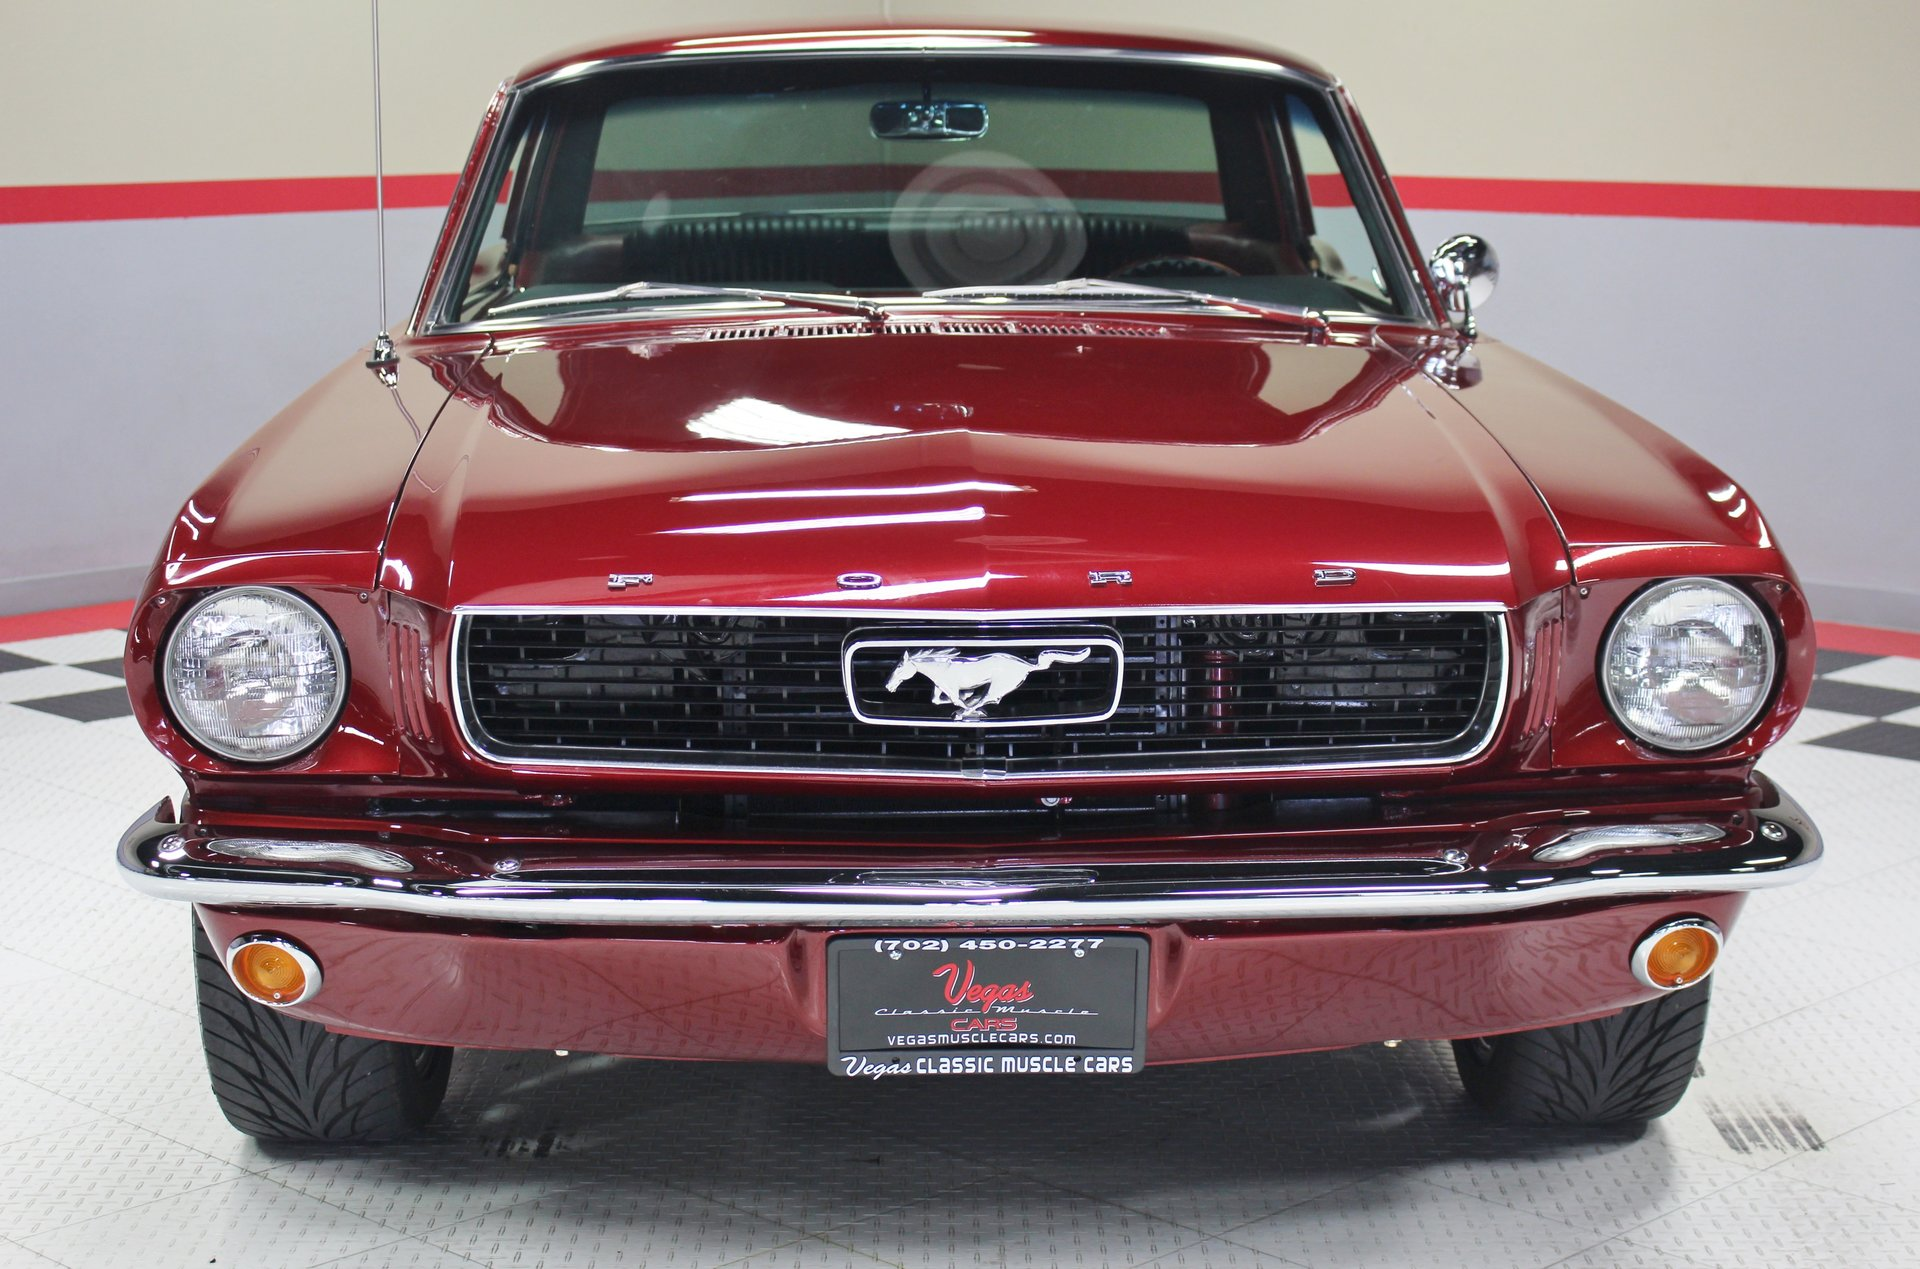 1966 Ford Mustang | Classic Cars & Muscle Cars For Sale in Las Vegas NV